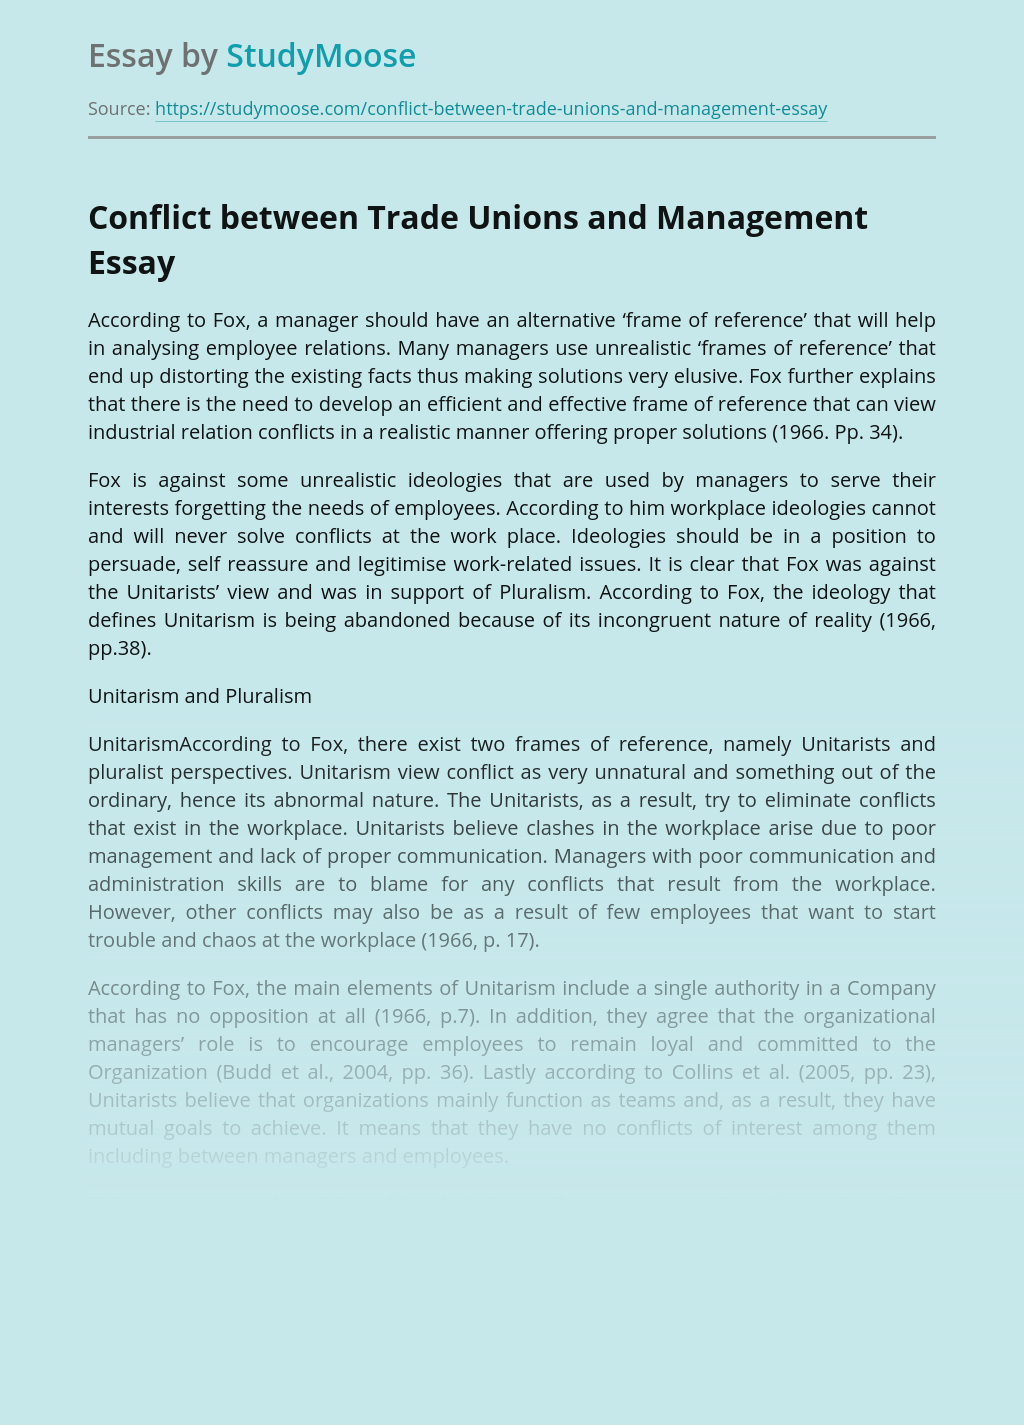 Conflict between Trade Unions and Management